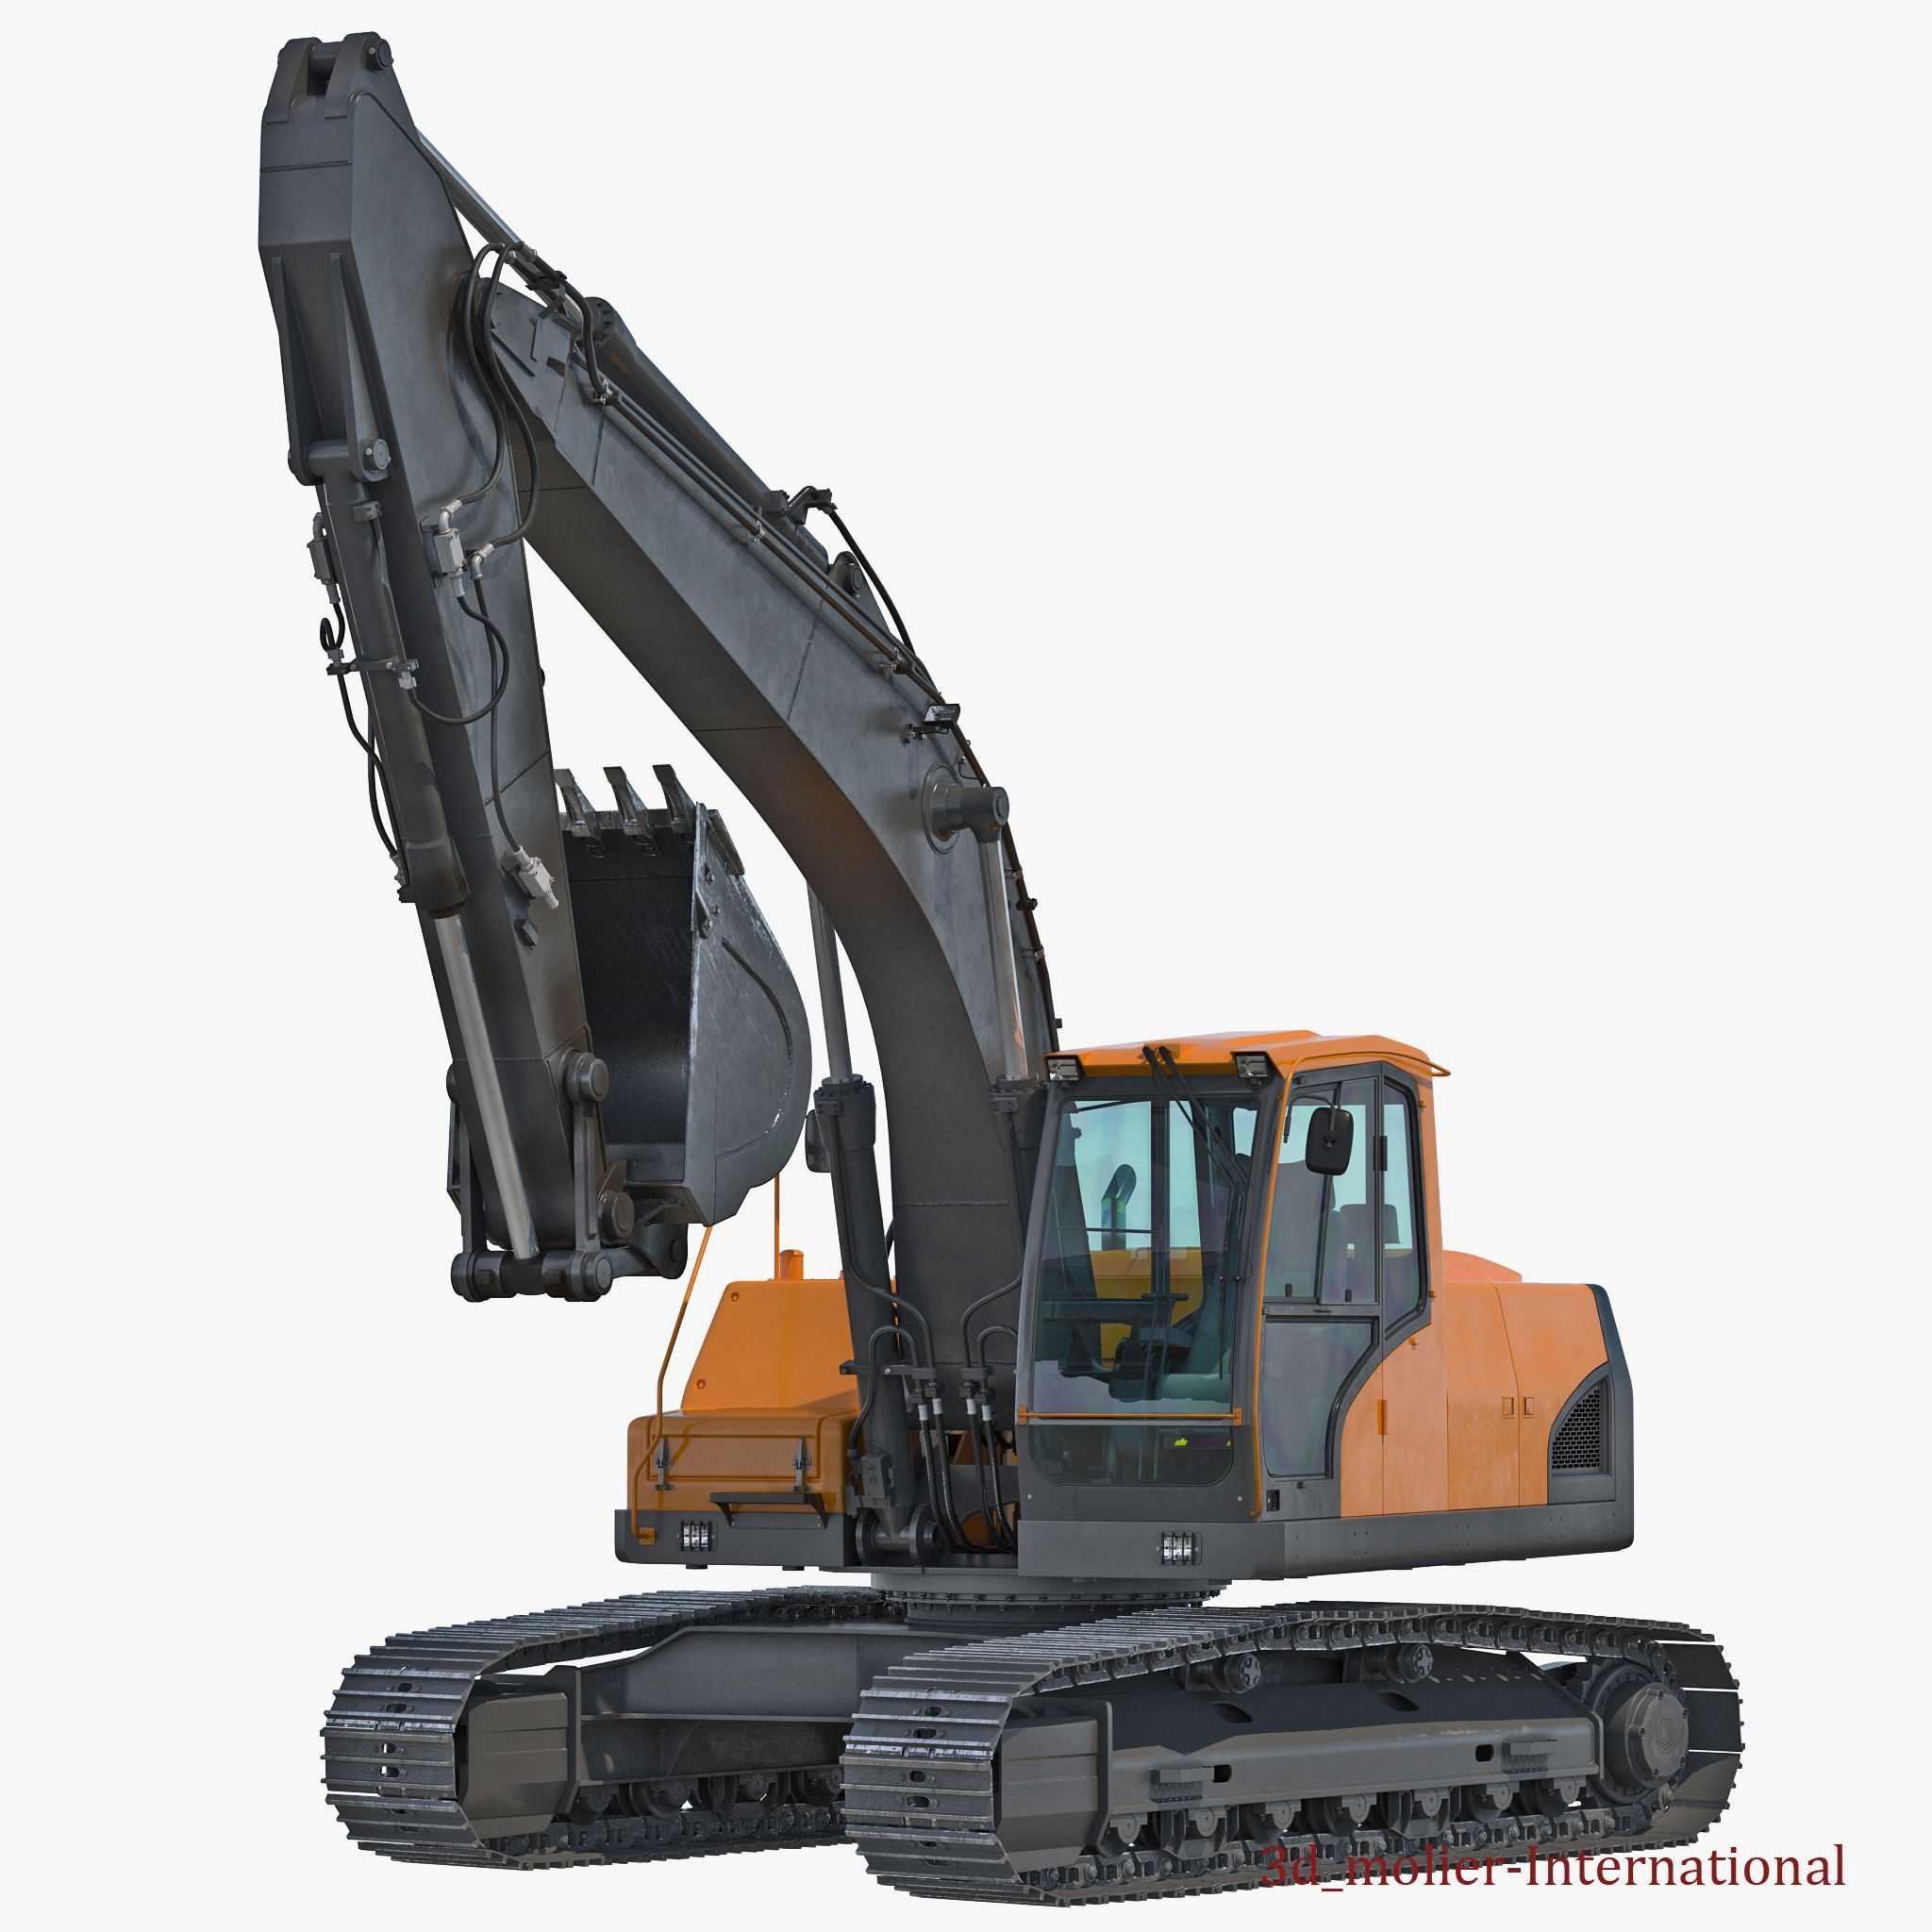 Tracked Excavator Generic Rigged 3d model http://www.turbosquid.com/3d-models/tracked-excavator-generic-rigged-3d-max/921789?referral=3d_molier-International